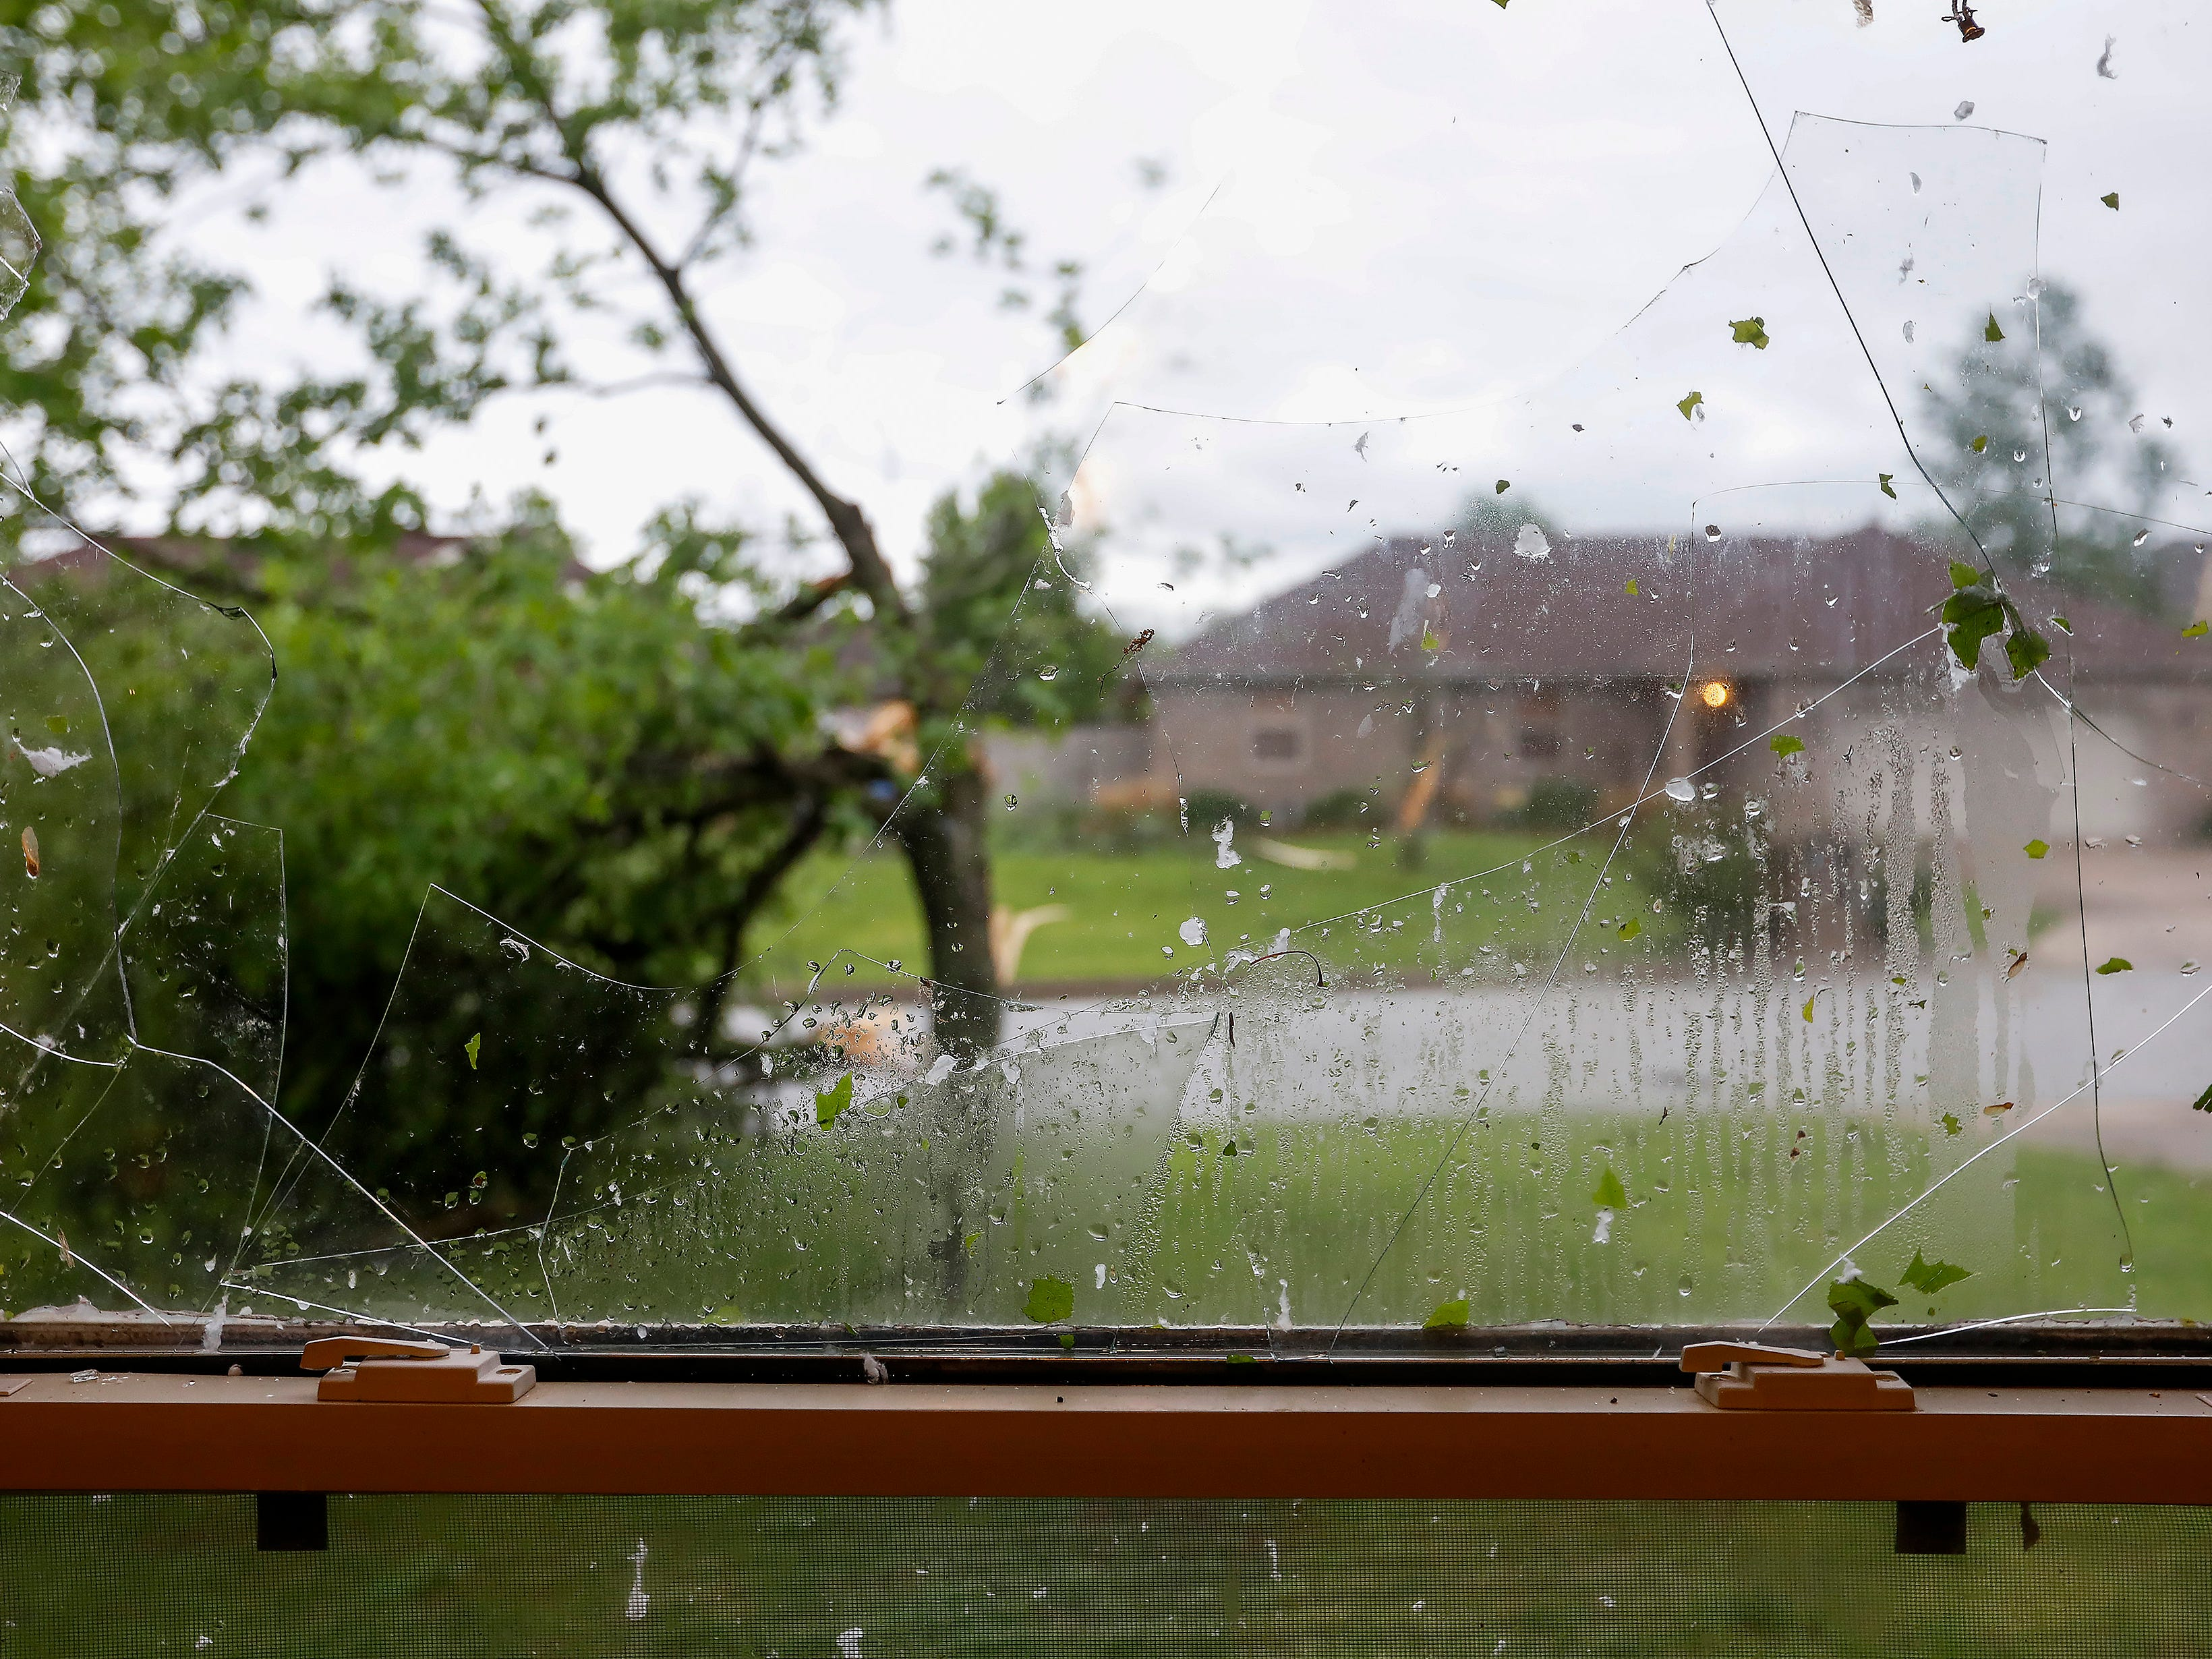 The window in Steve and Kay Byard's home was broken during a likely tornado that hit Ozark on Tuesday, April 30, 2019.